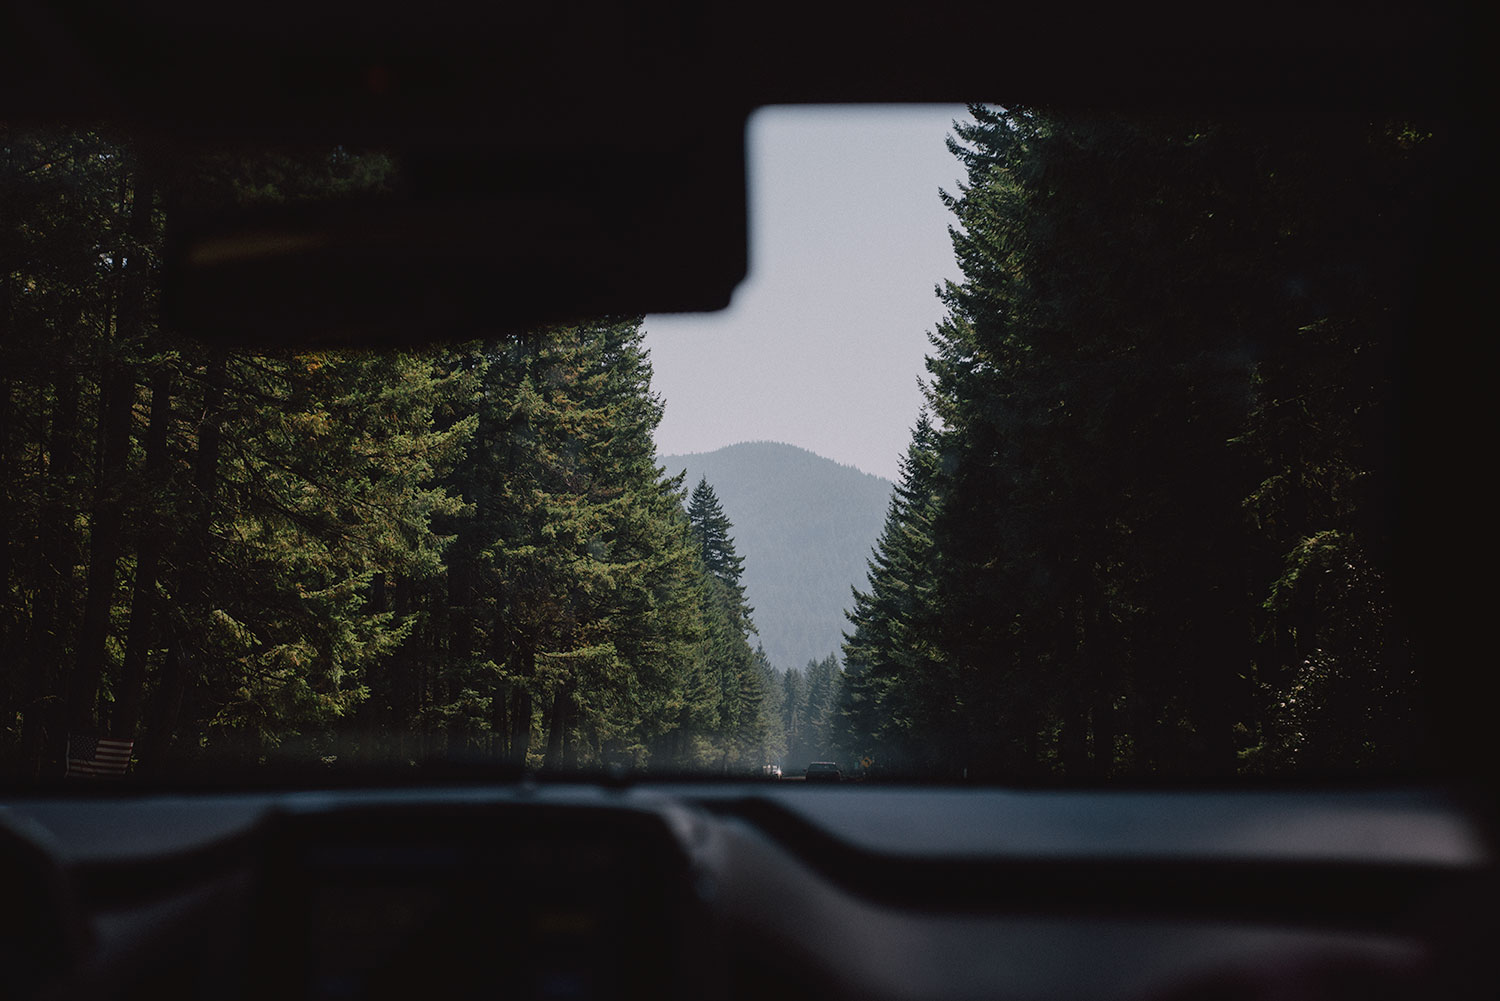 Driving between the forests